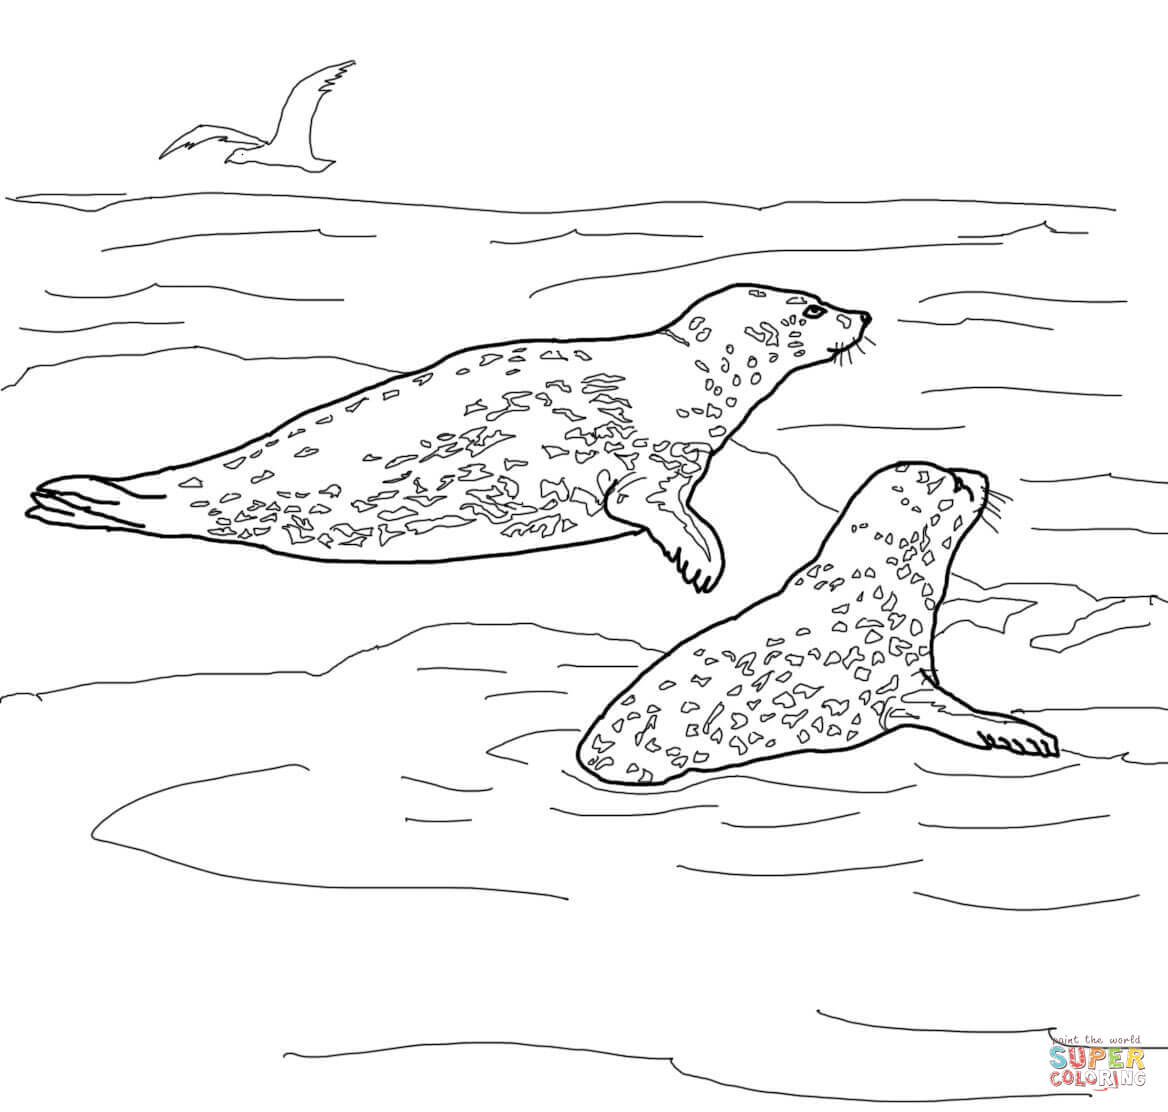 Leopard seal coloring pages download